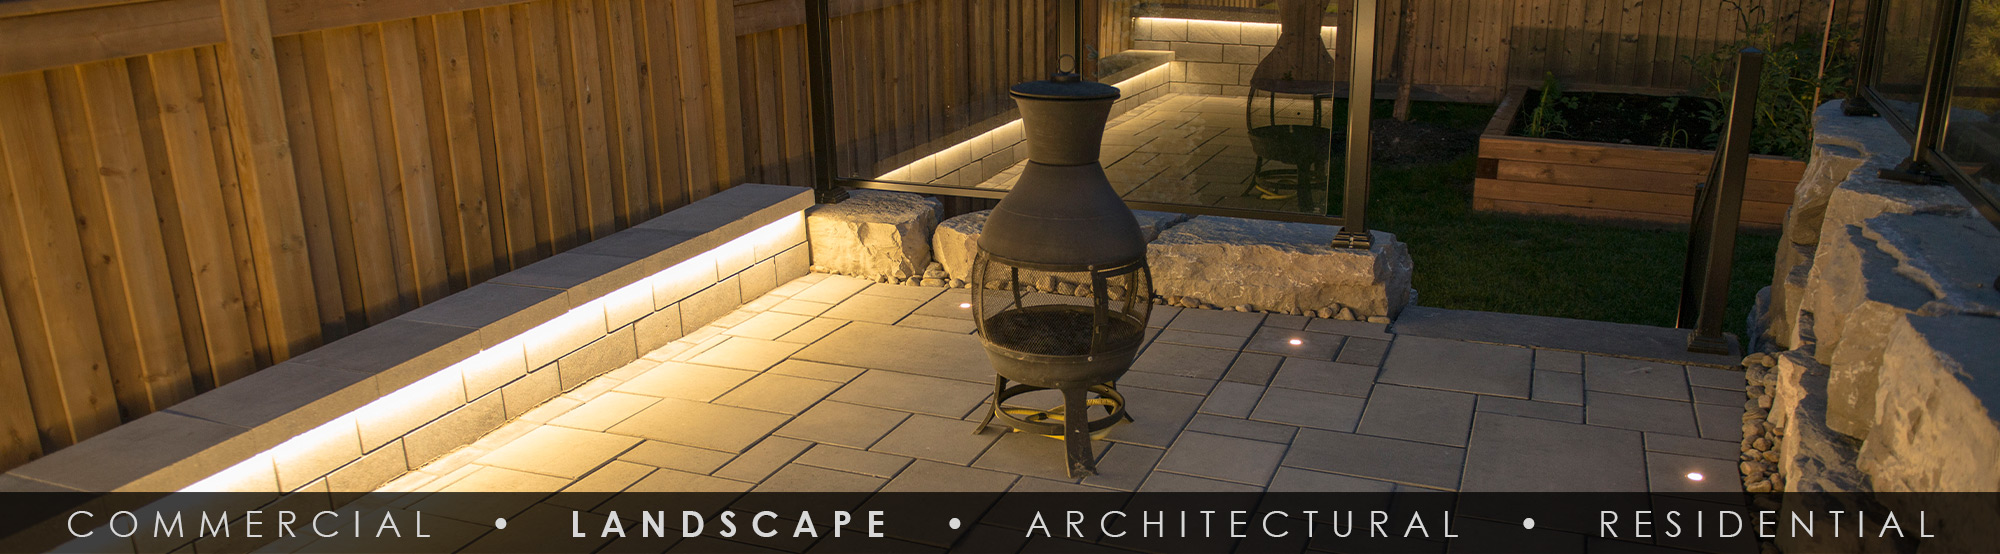 SGi LED Landscape Lighting Deck and Patio Lighting